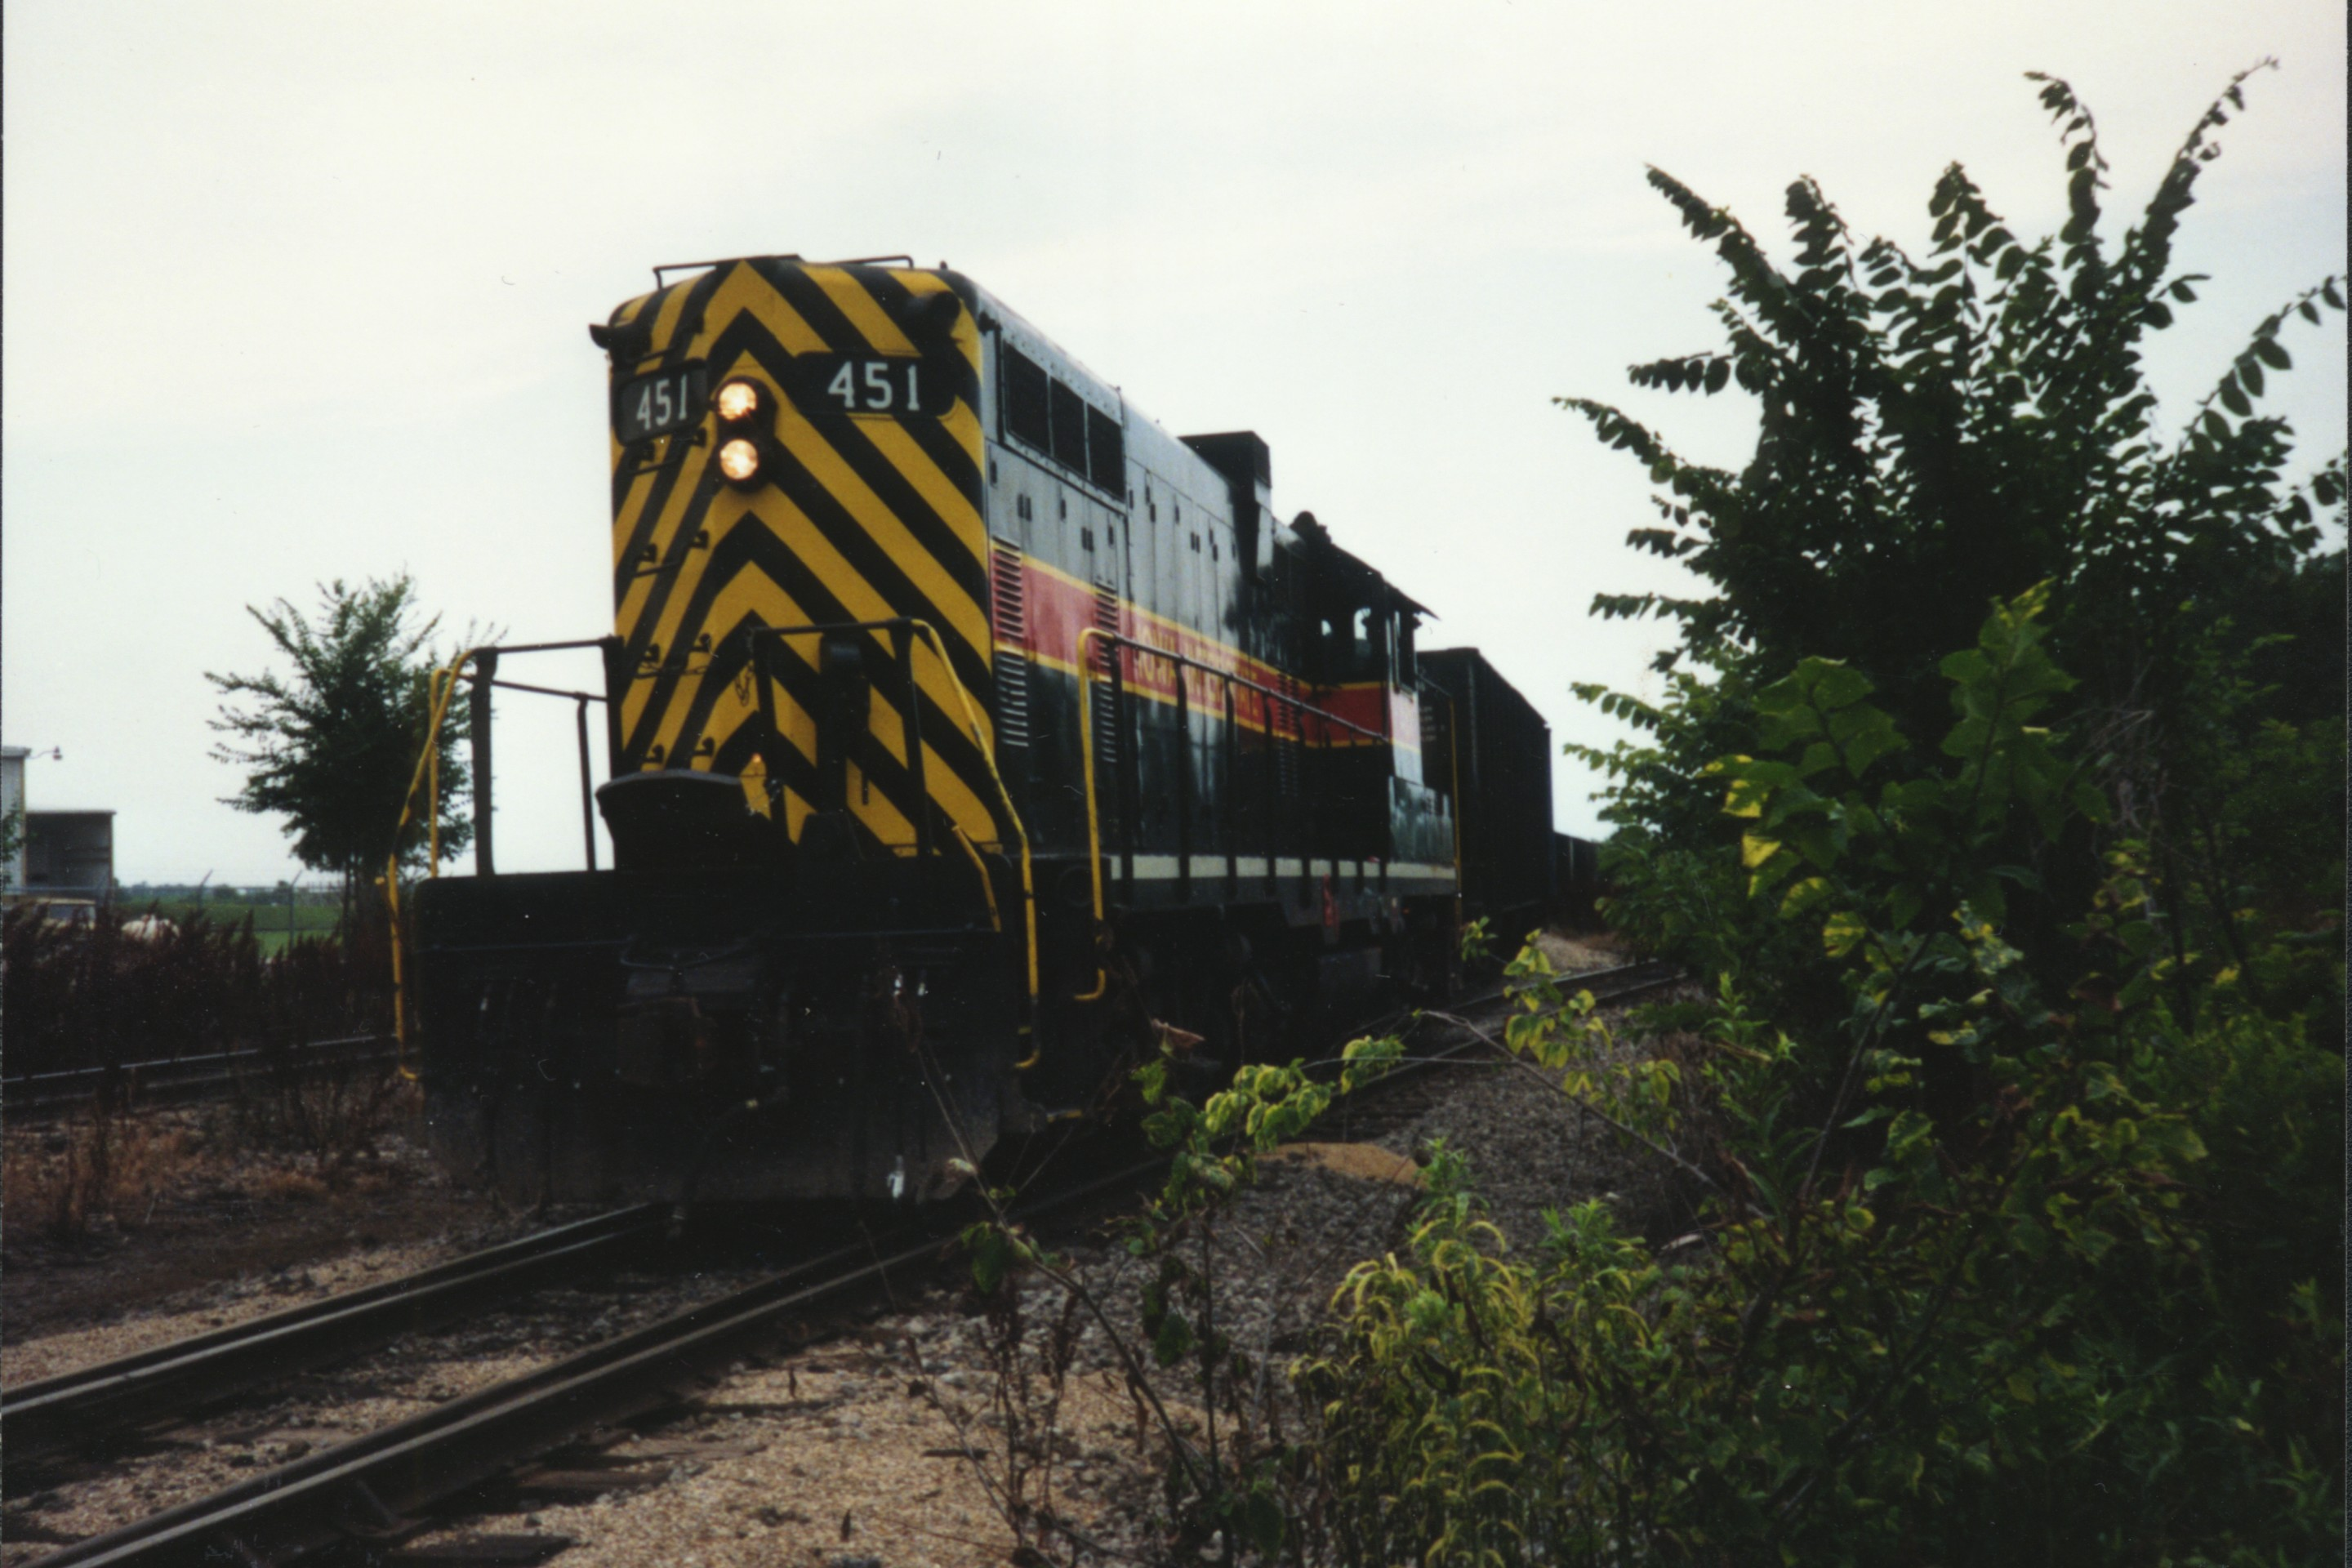 IAIS 451 at Altoona, IA on 01-Jul-1992